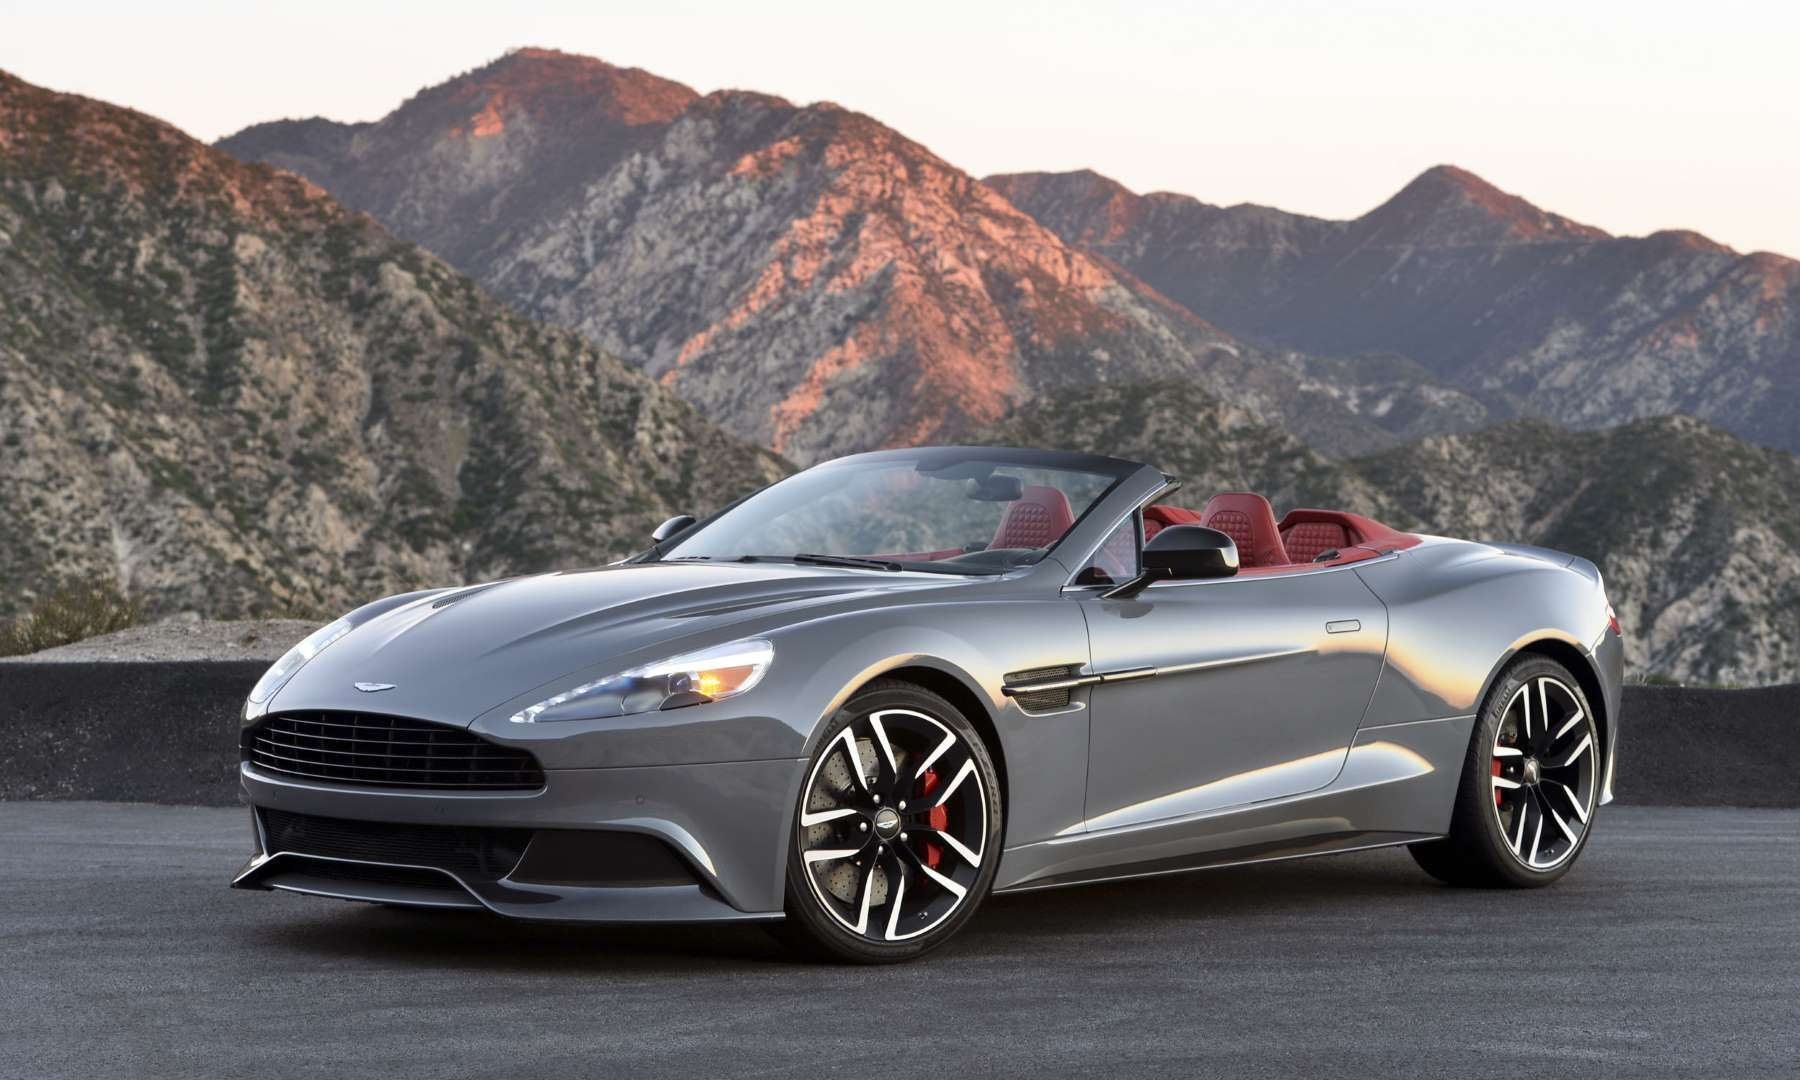 Hot Drop Tops Convertibles of the 2016 Model Year Aston